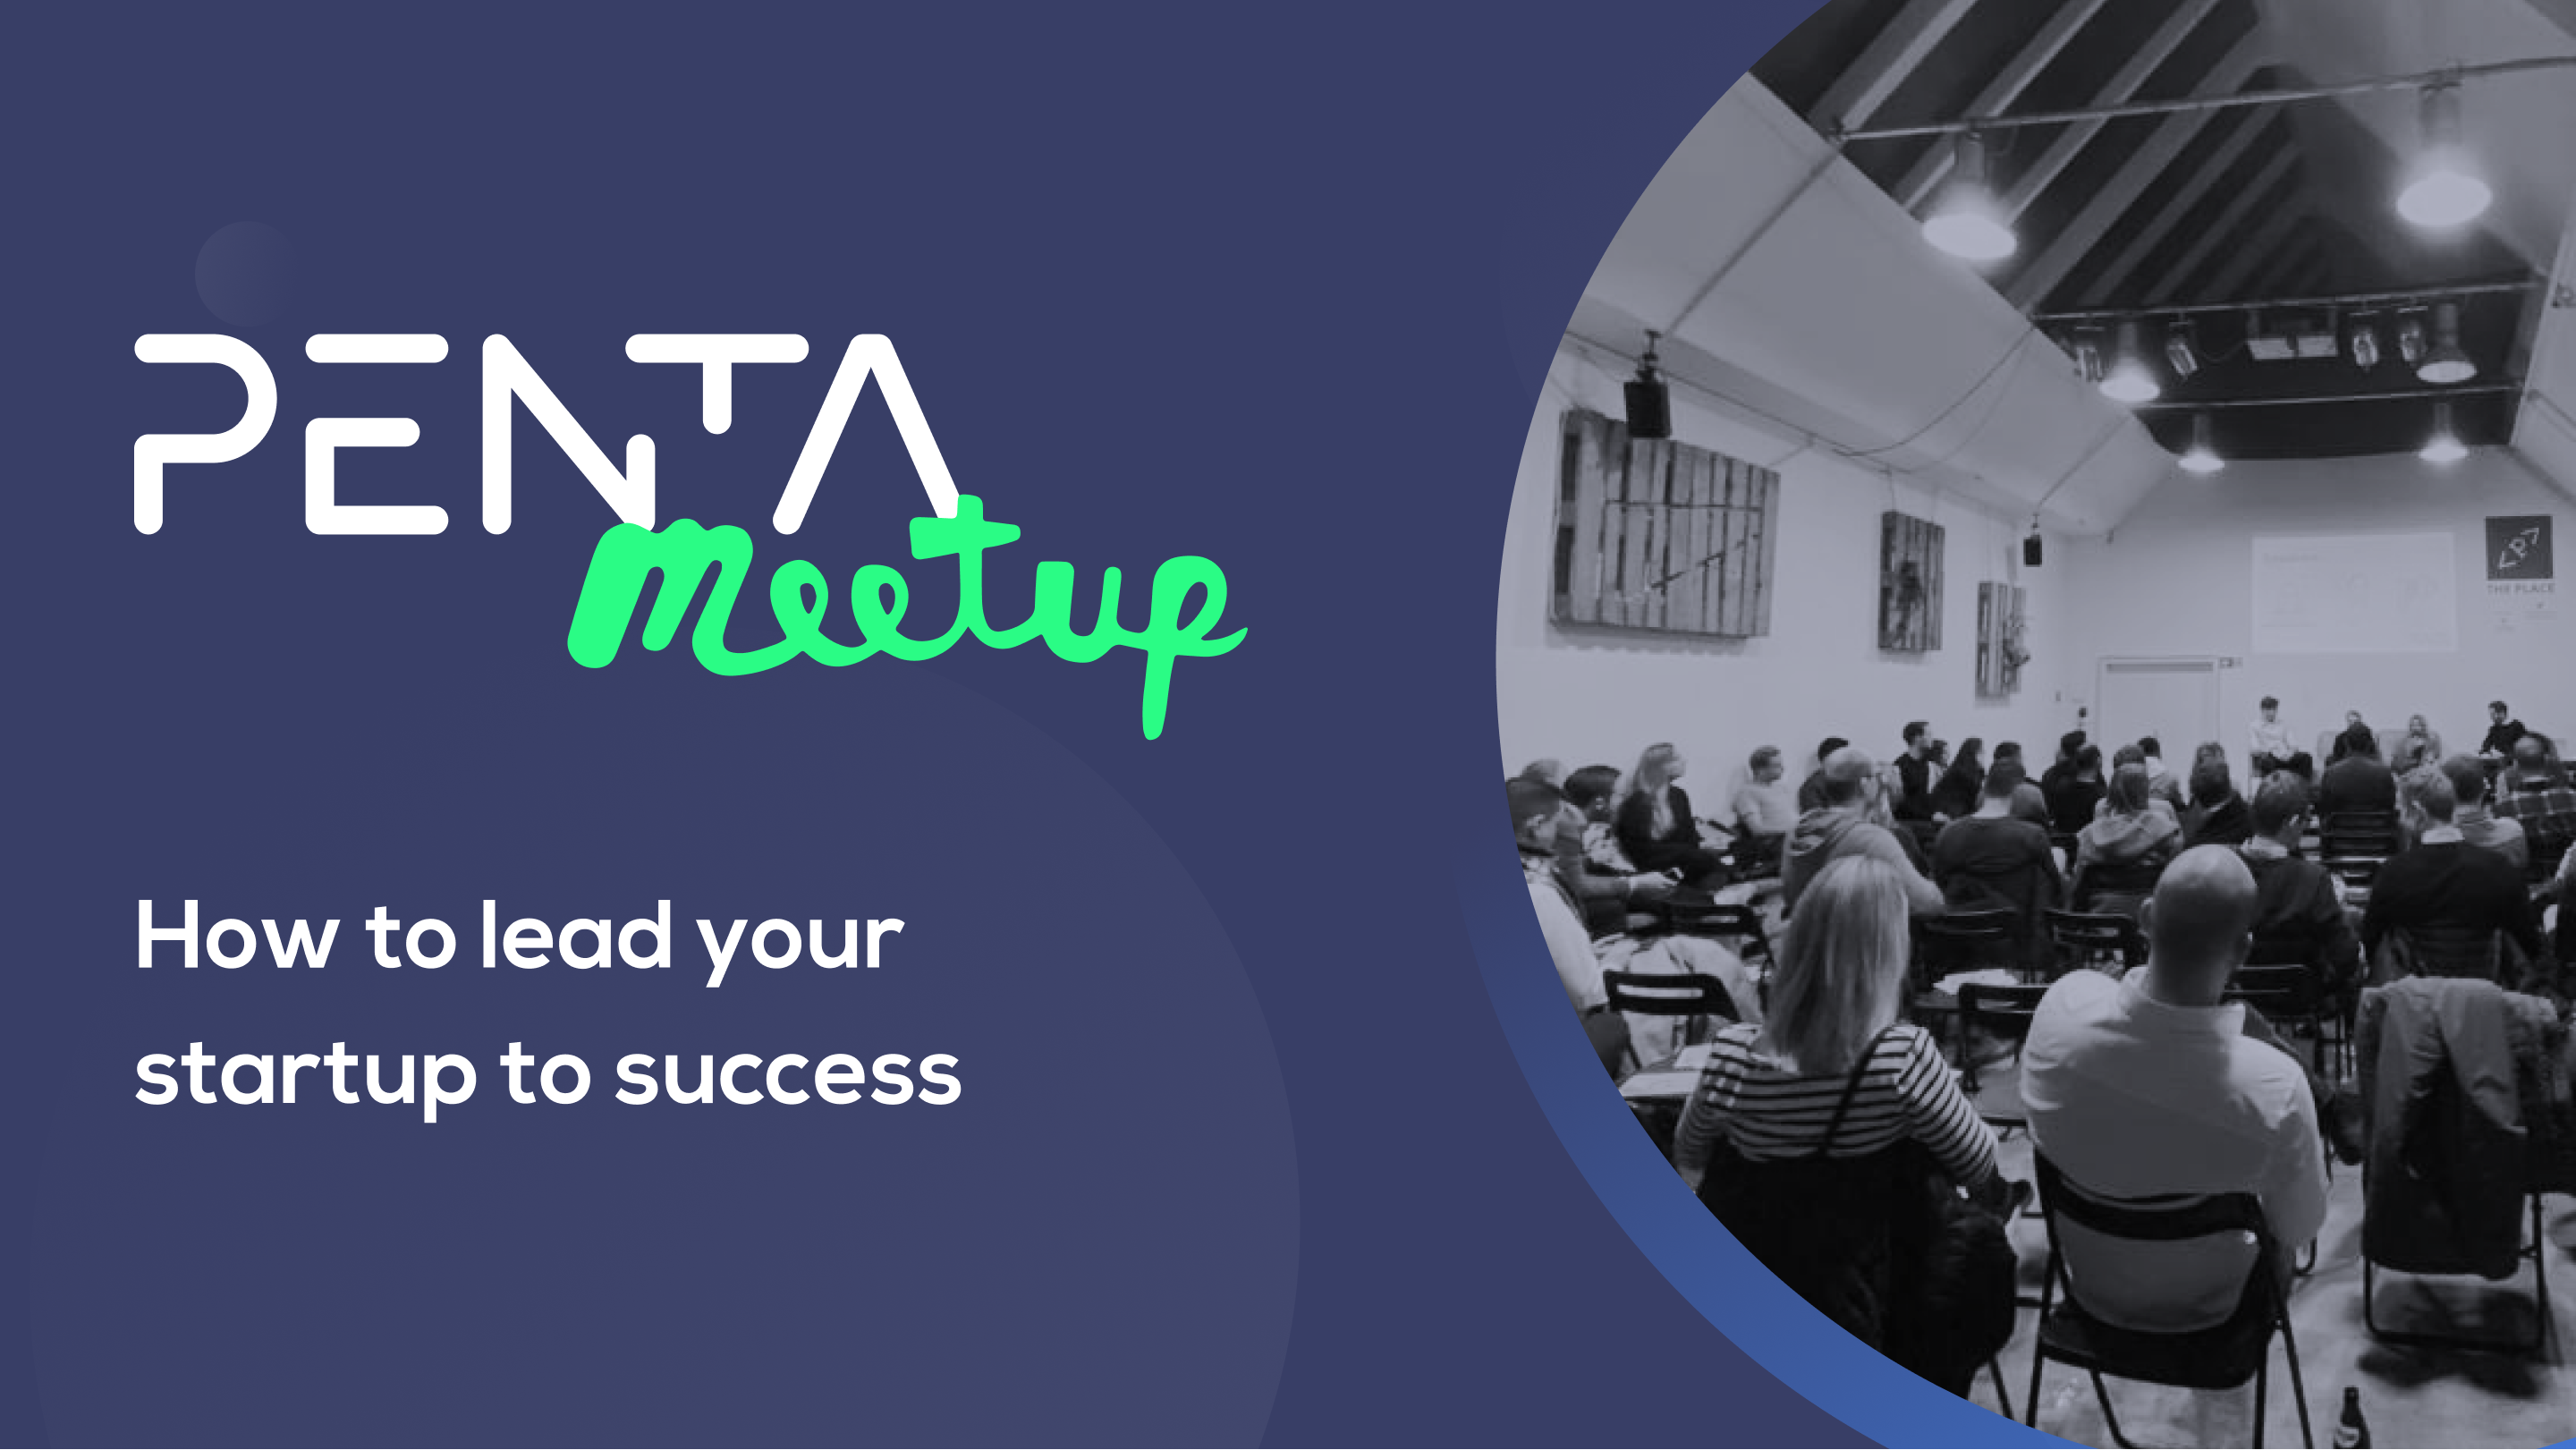 Penta Fintech Meetup: How to lead your startup to success